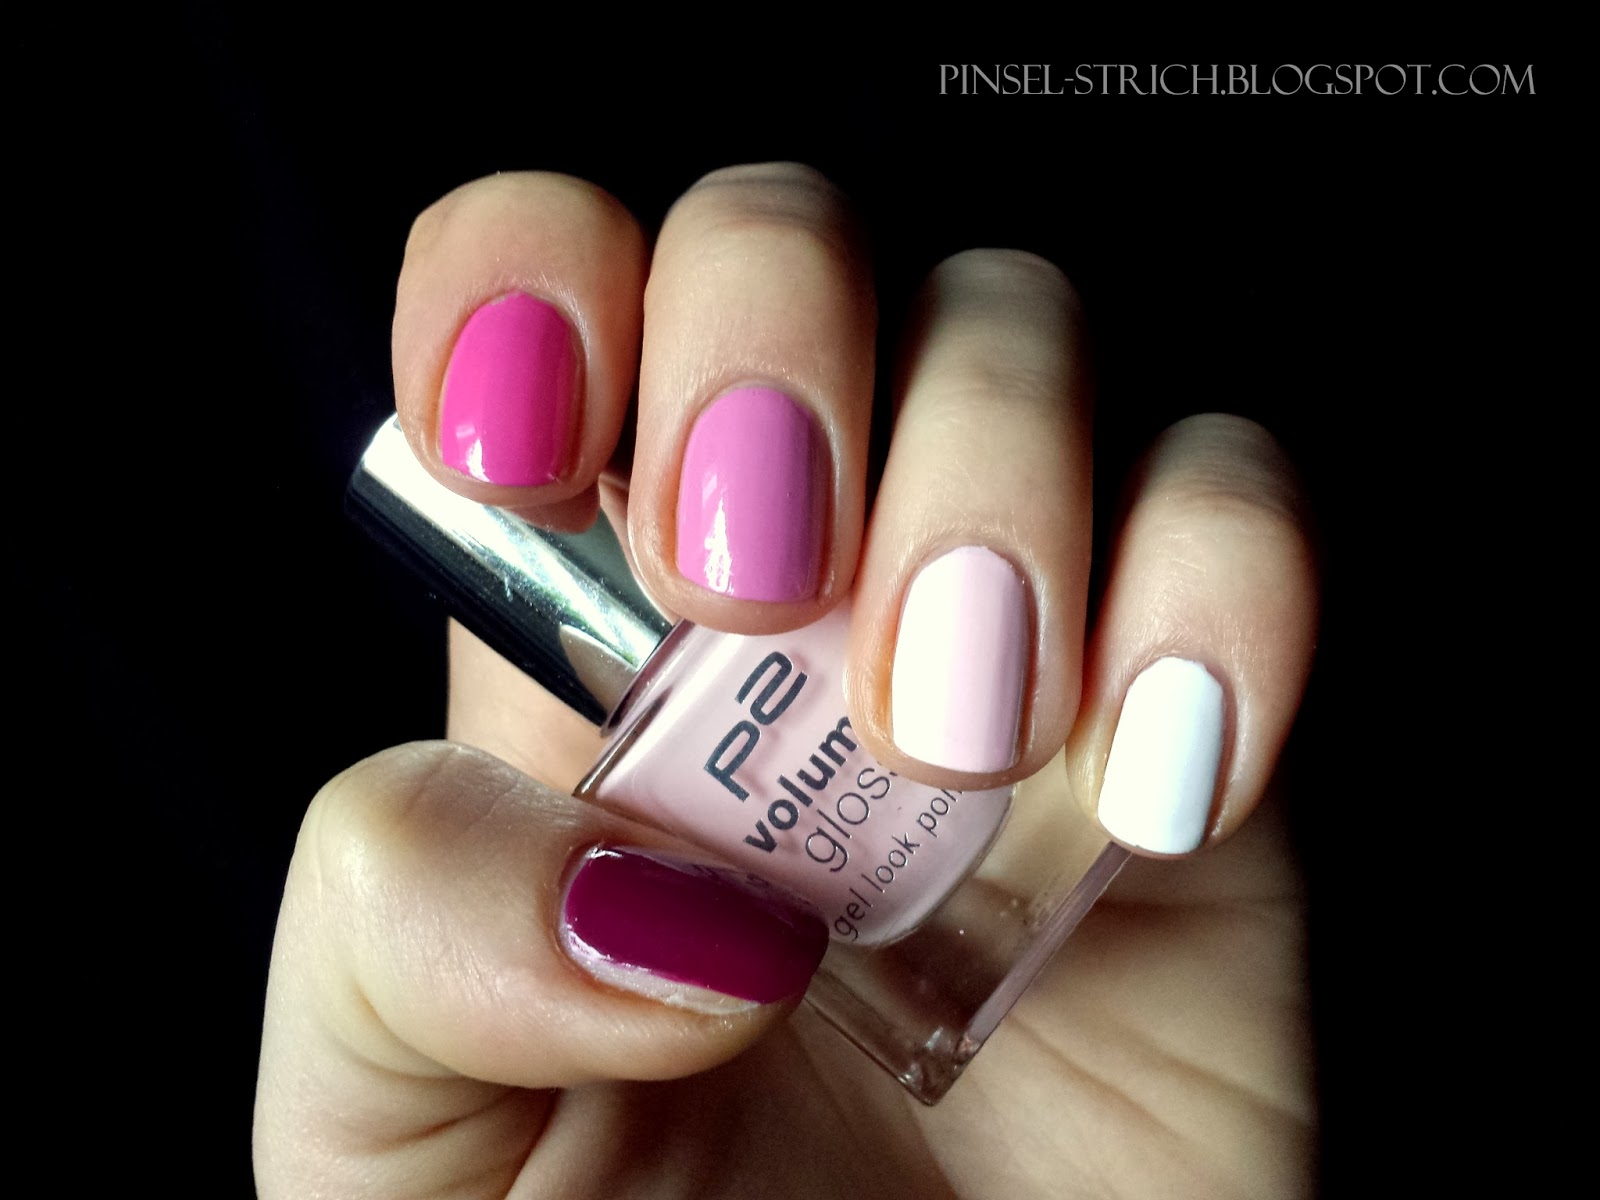 Pinselstrich Ombre Nails In Rosa